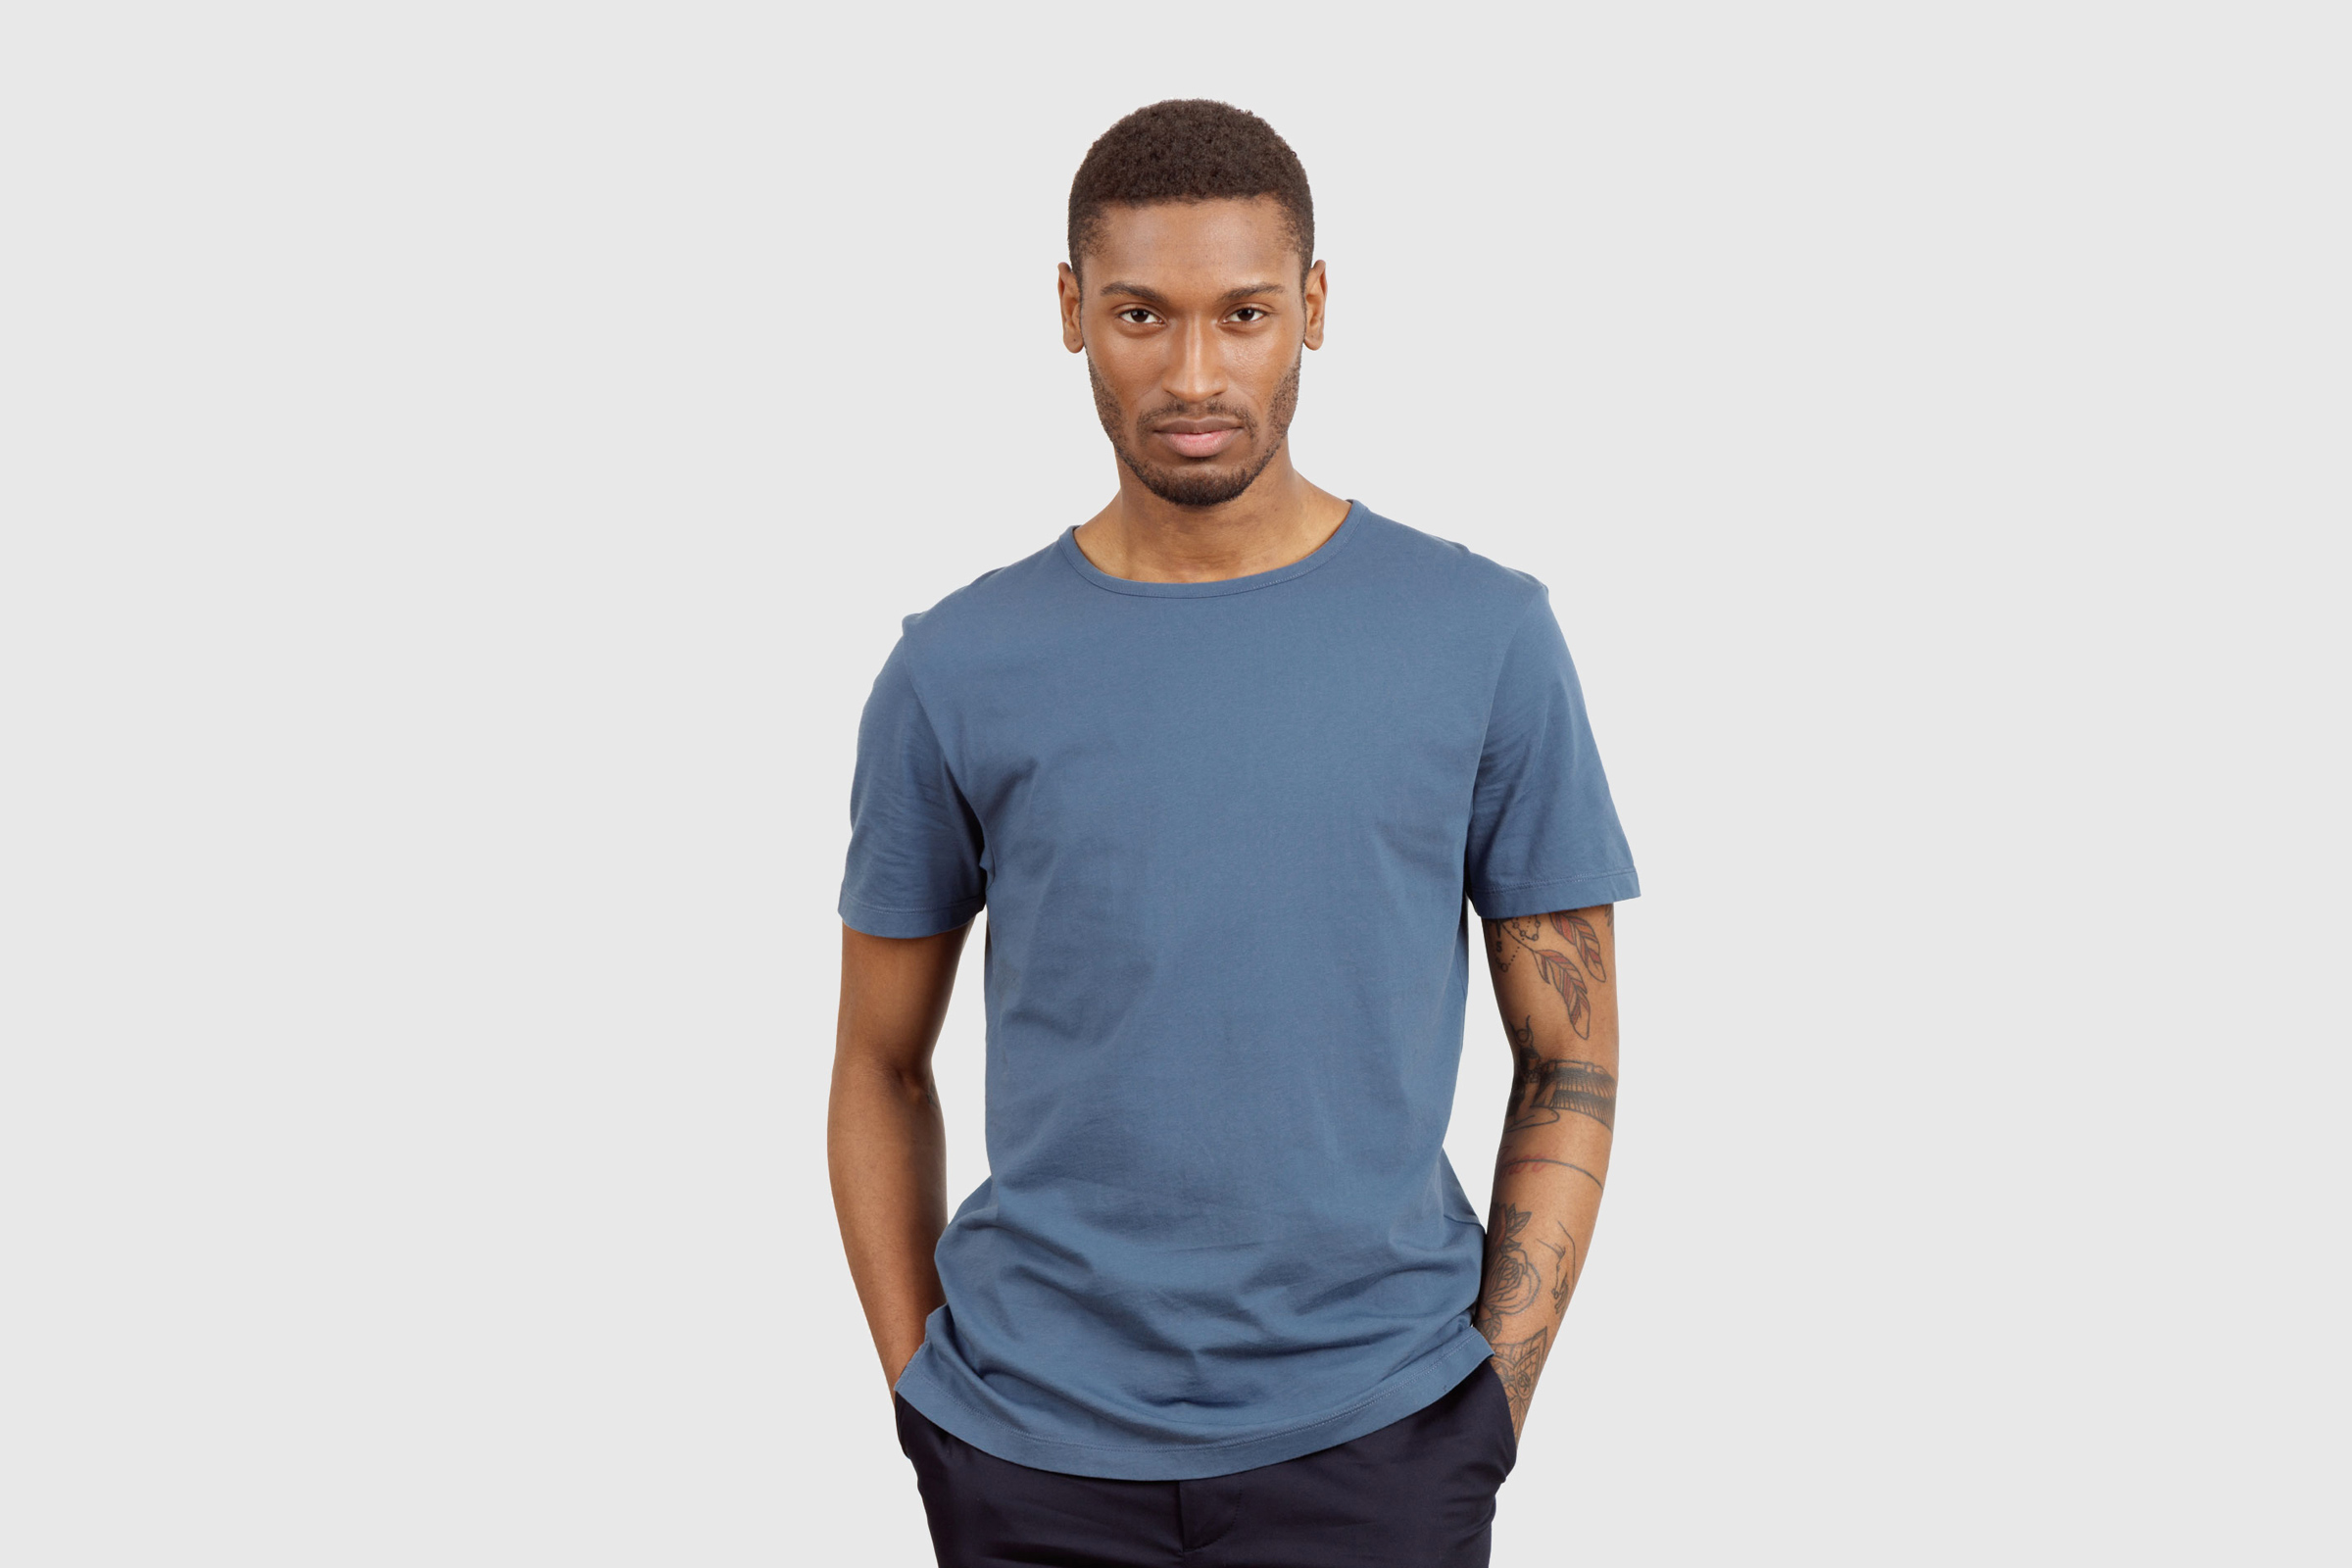 Men's Basic Tees L'ESTRANGE